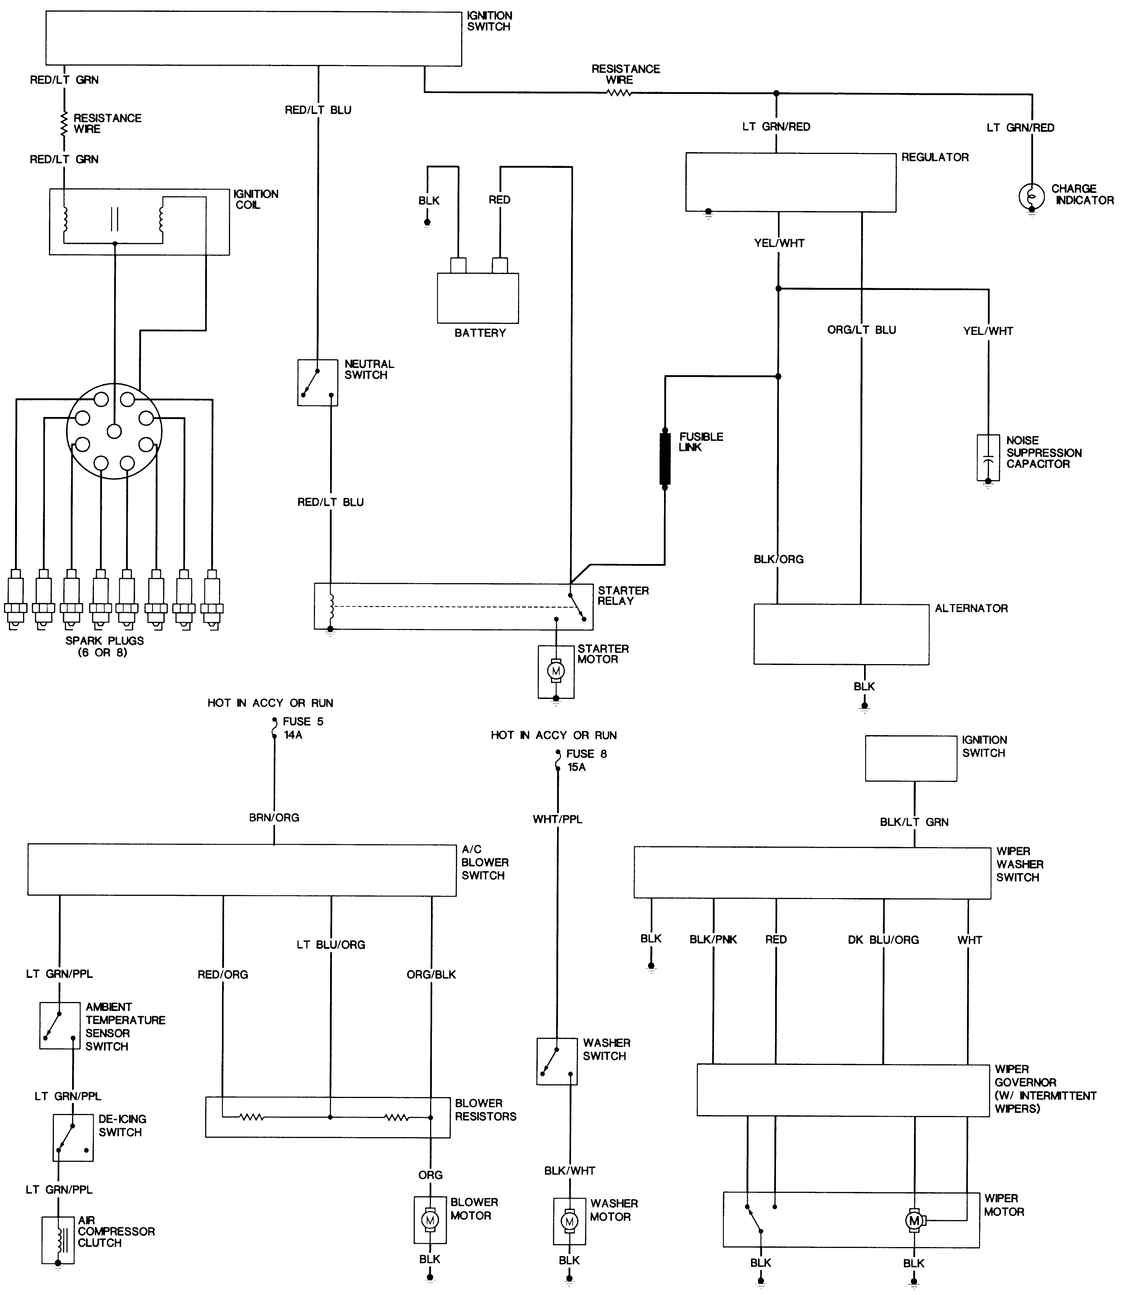 wiring diagram for ford points distributor about gatbook co amazing rh chromatex me Chevy Ignition Coil Wiring Diagram Ford Ignition Module Wiring Diagram